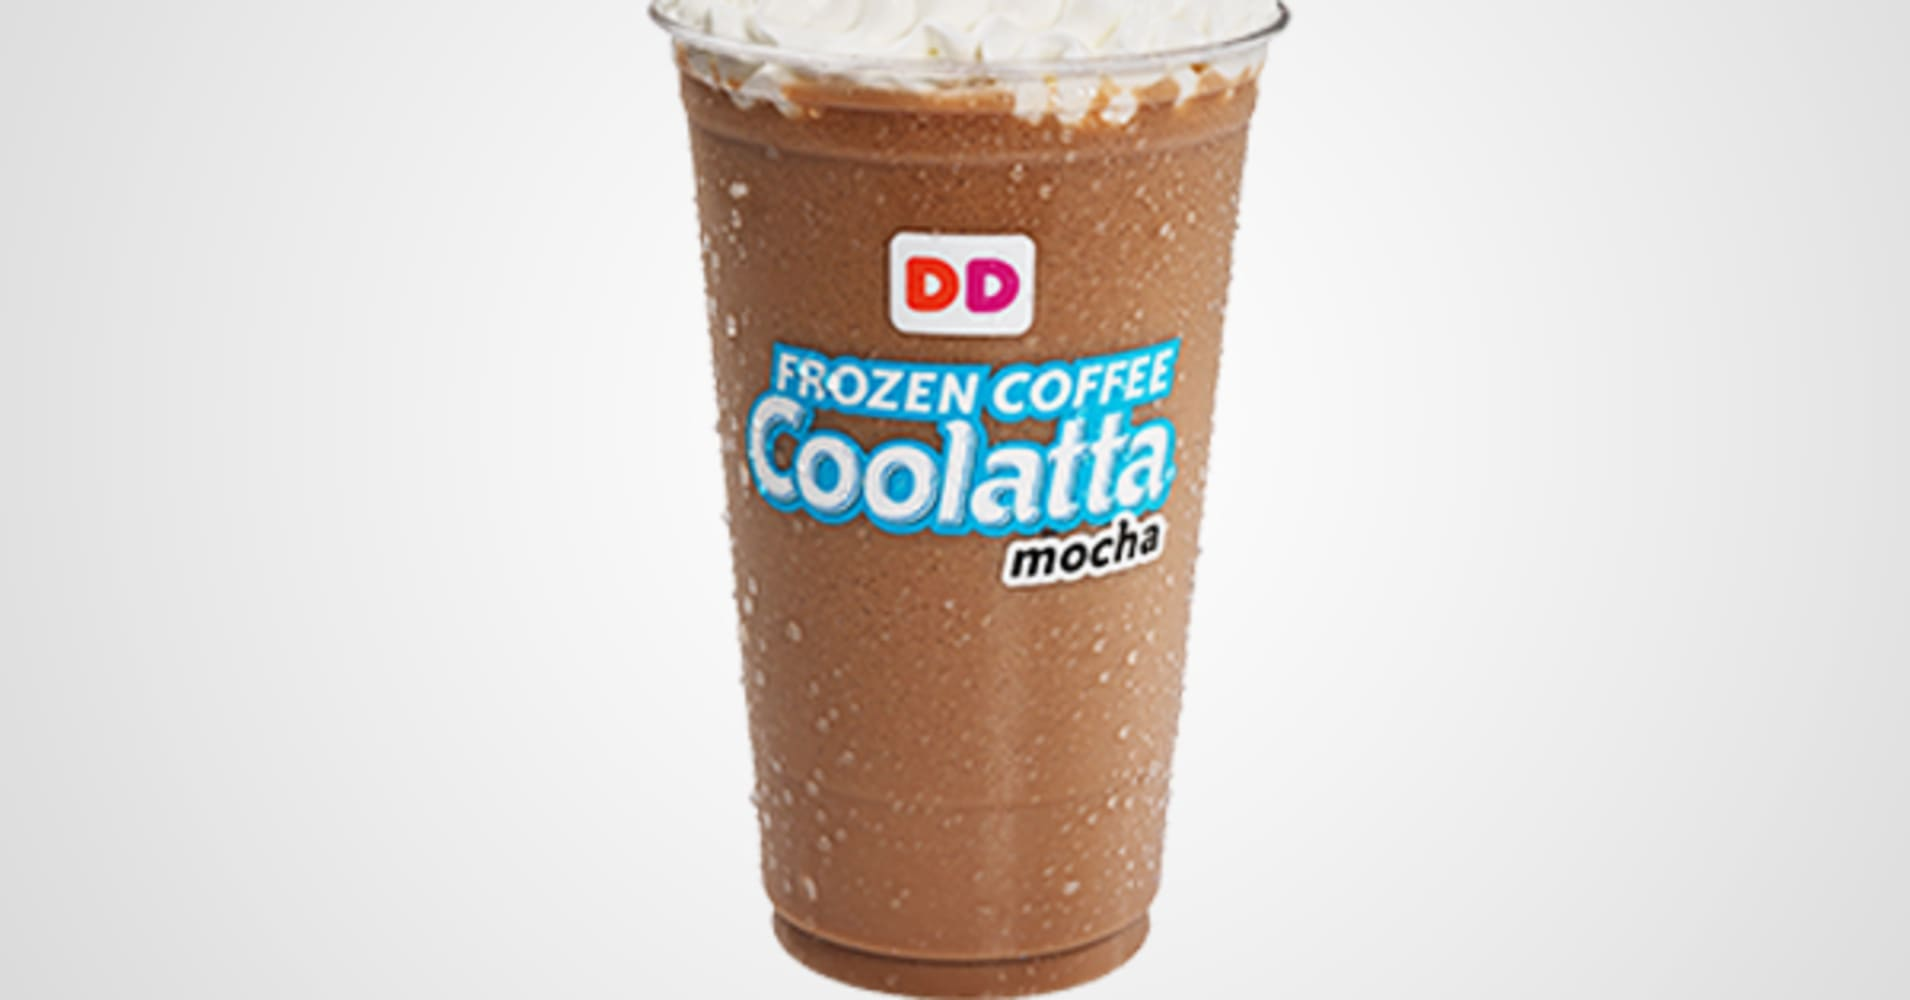 Dunkin' Donuts is ditching its Coffee Coolatta and people are really unhappy